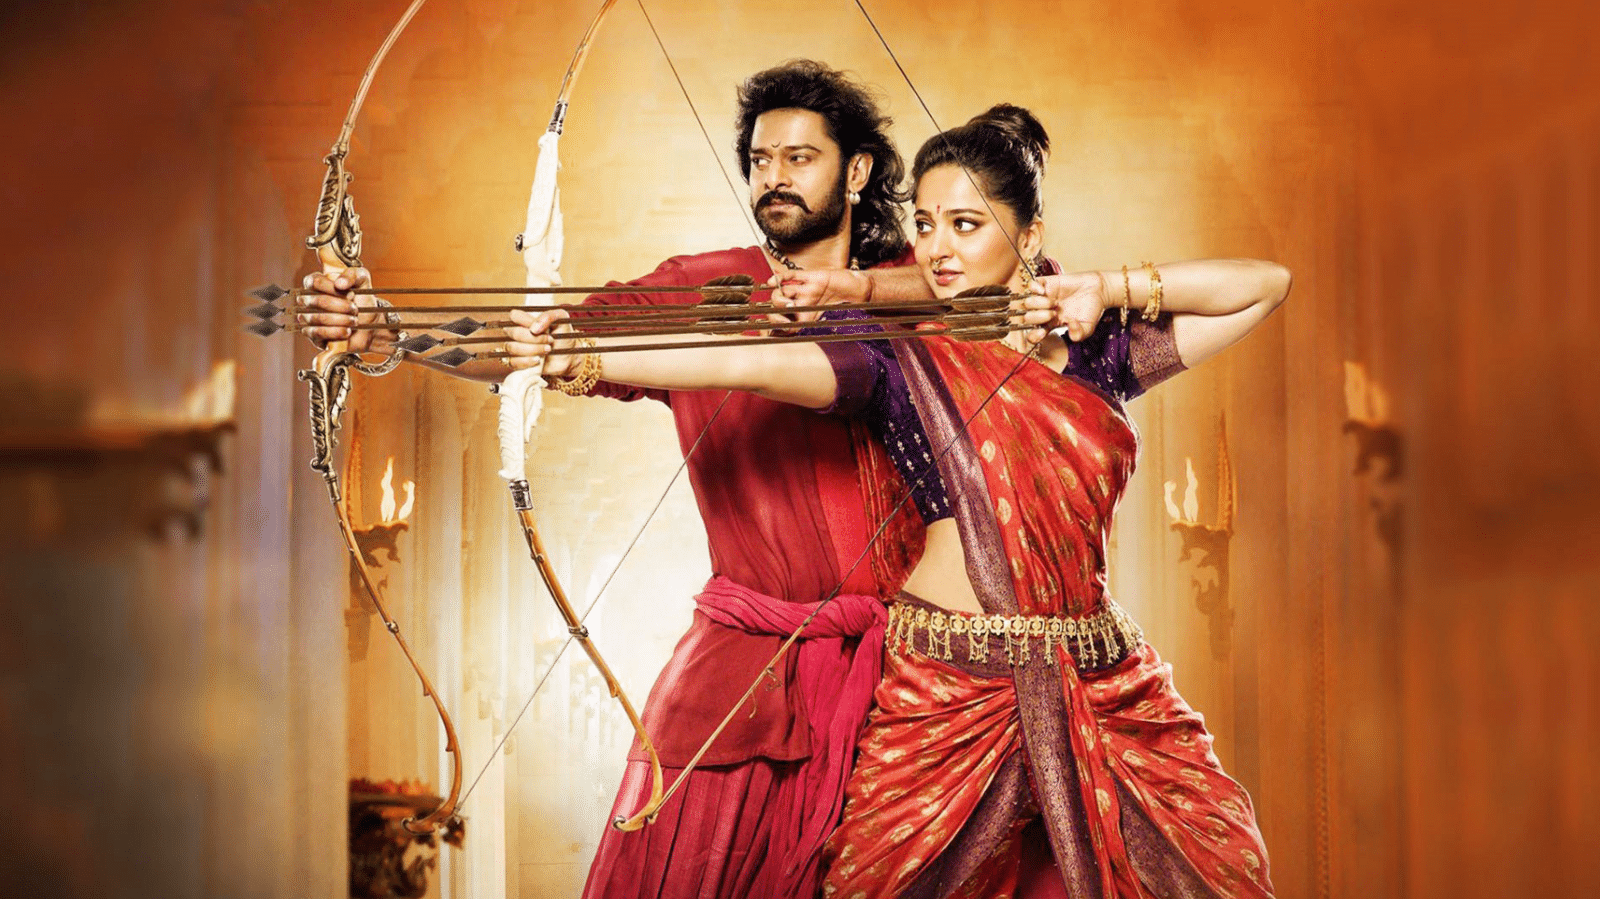 1_cD5ifrEAogP7Wu1hf9h4_Q1 Baahubali 2: The Conclusion